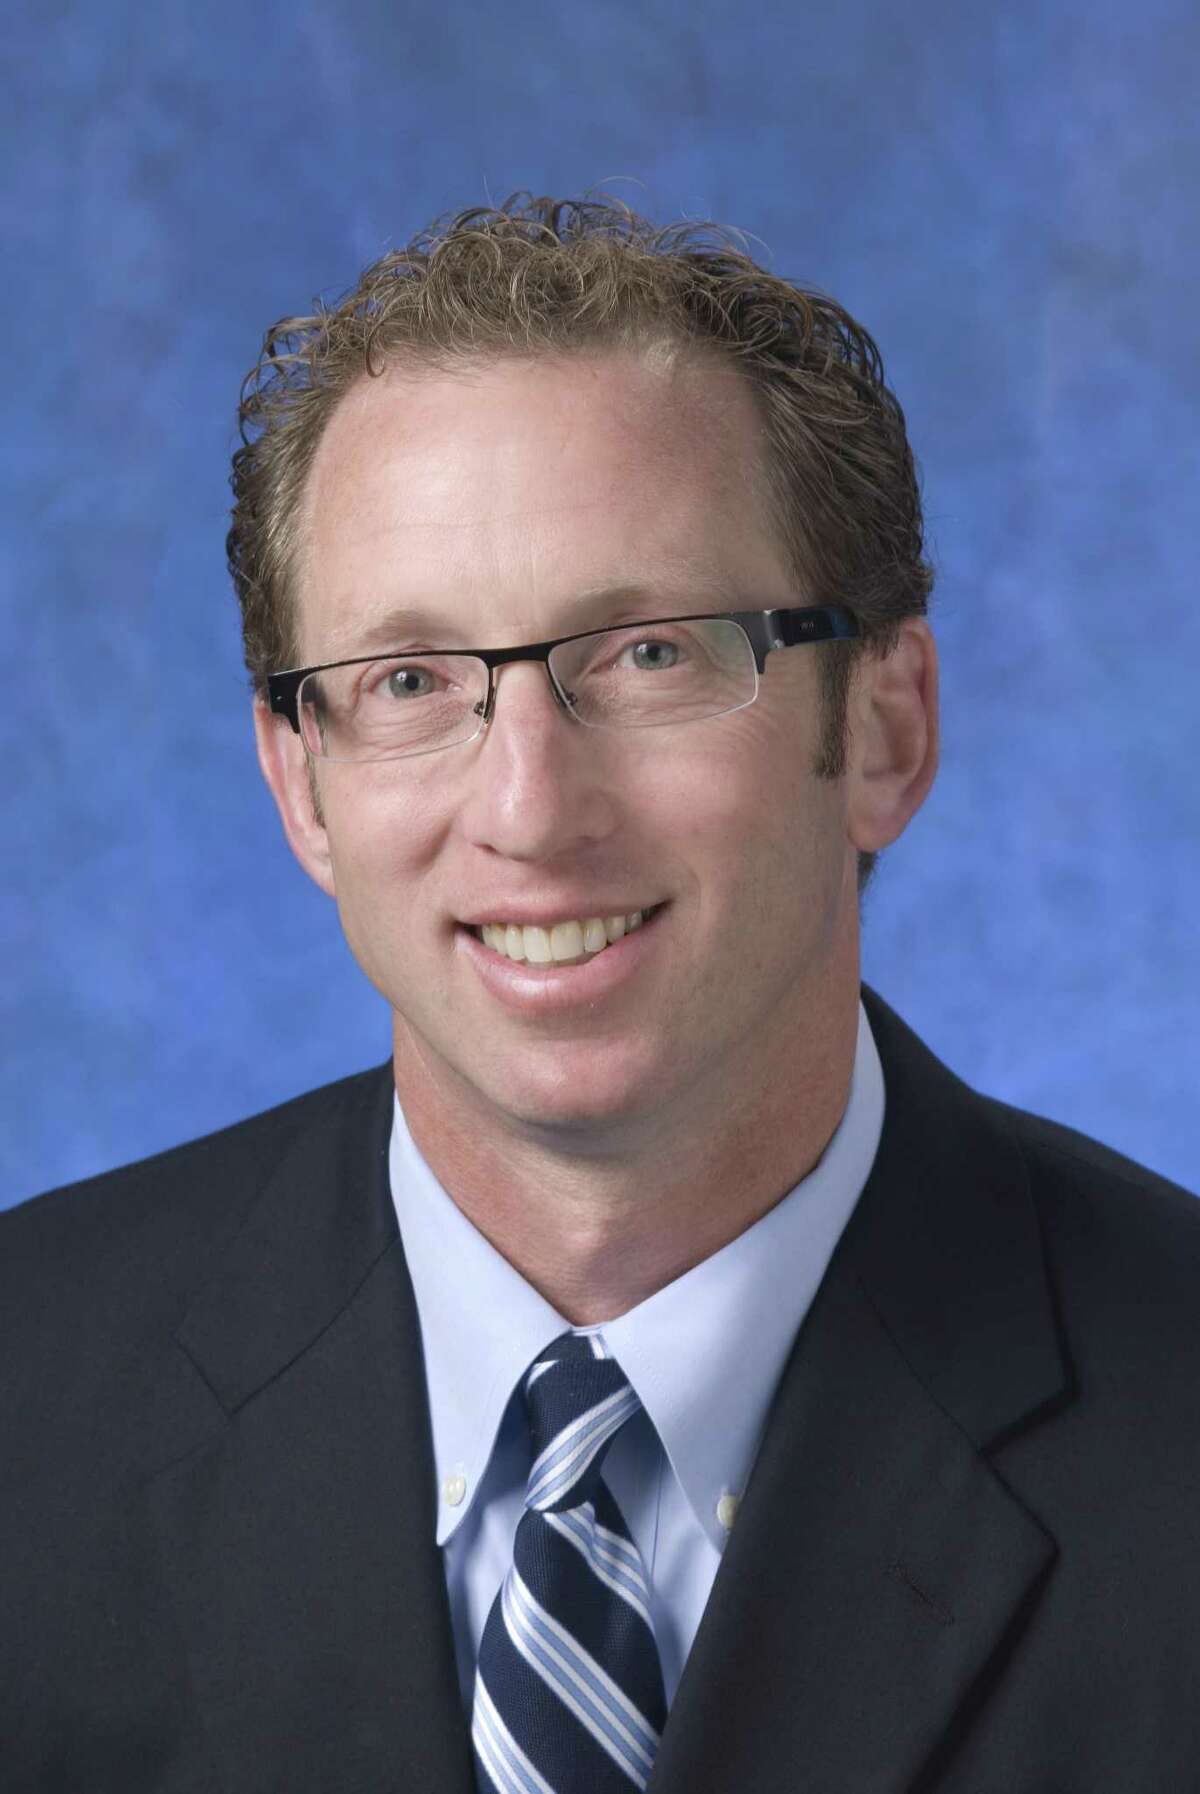 Dr. Craig Landau has been appointed Stamford-based Purdue Pharma's new president and CEO.